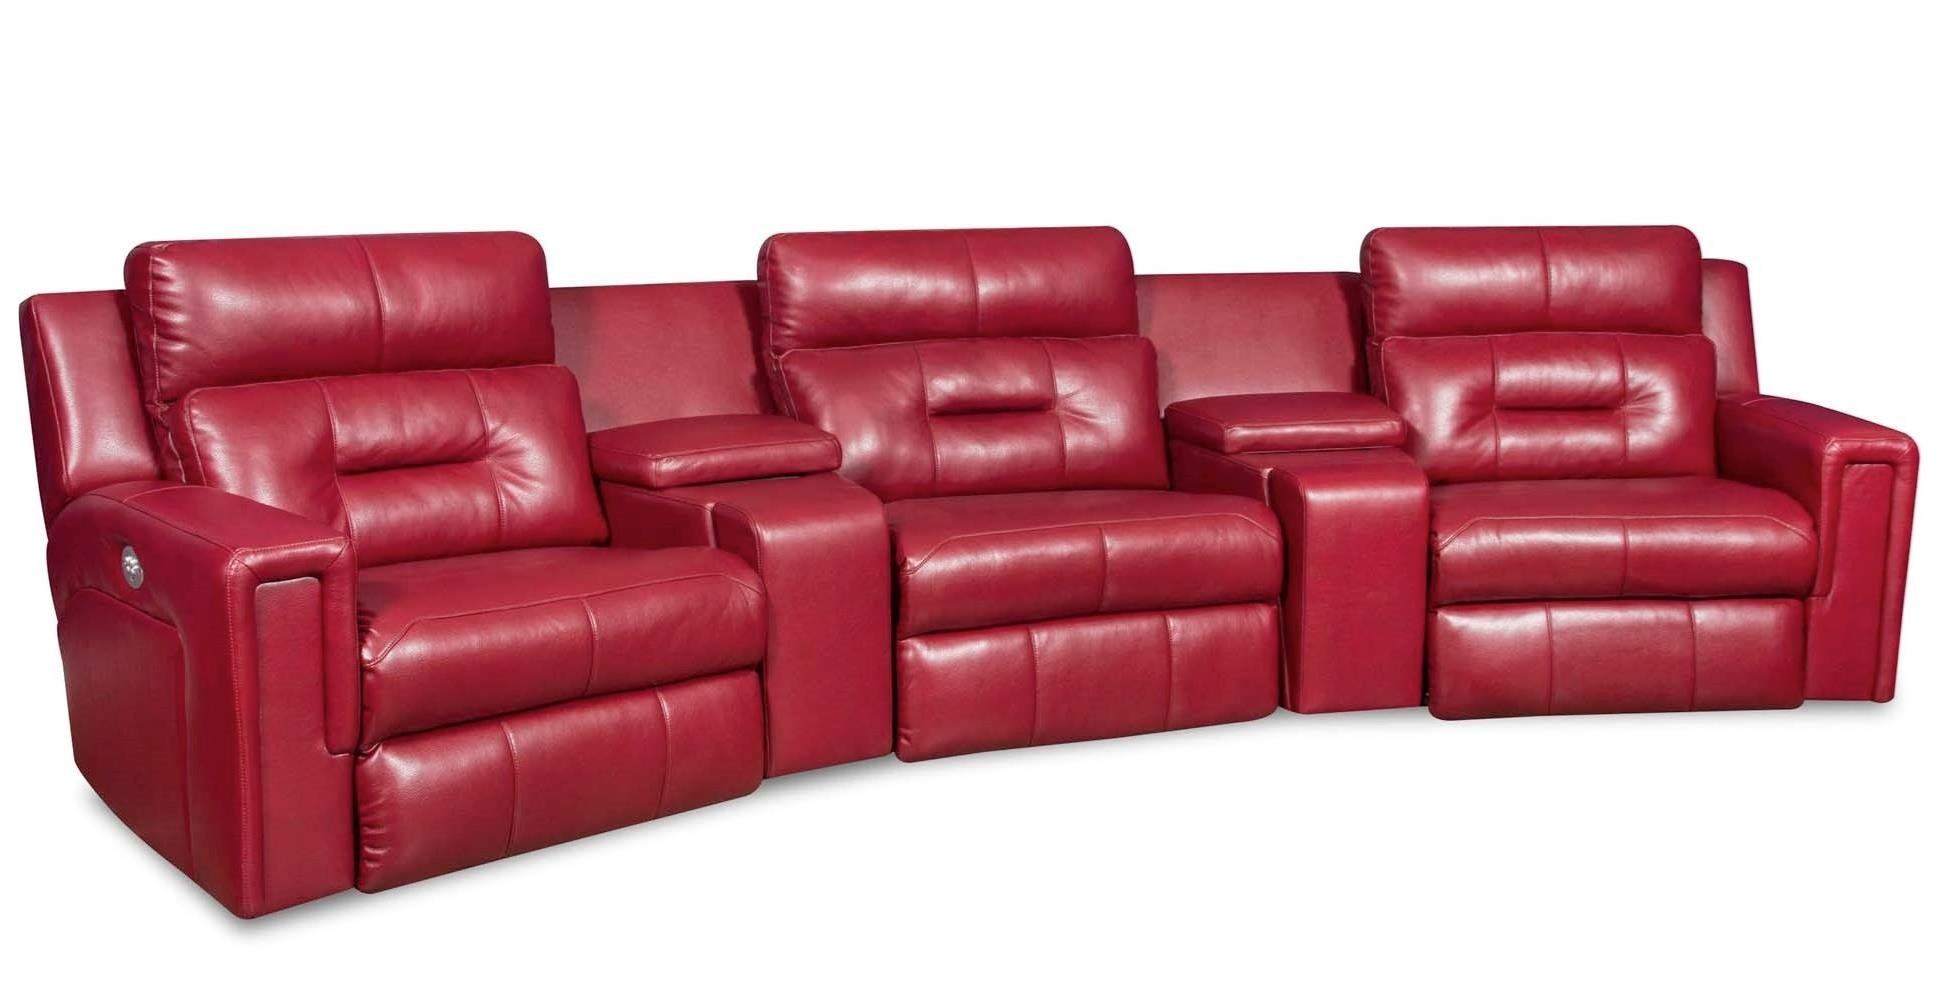 Excel Power Reclining Sectional Sofa by Southern Motion at Furniture Superstore - Rochester, MN